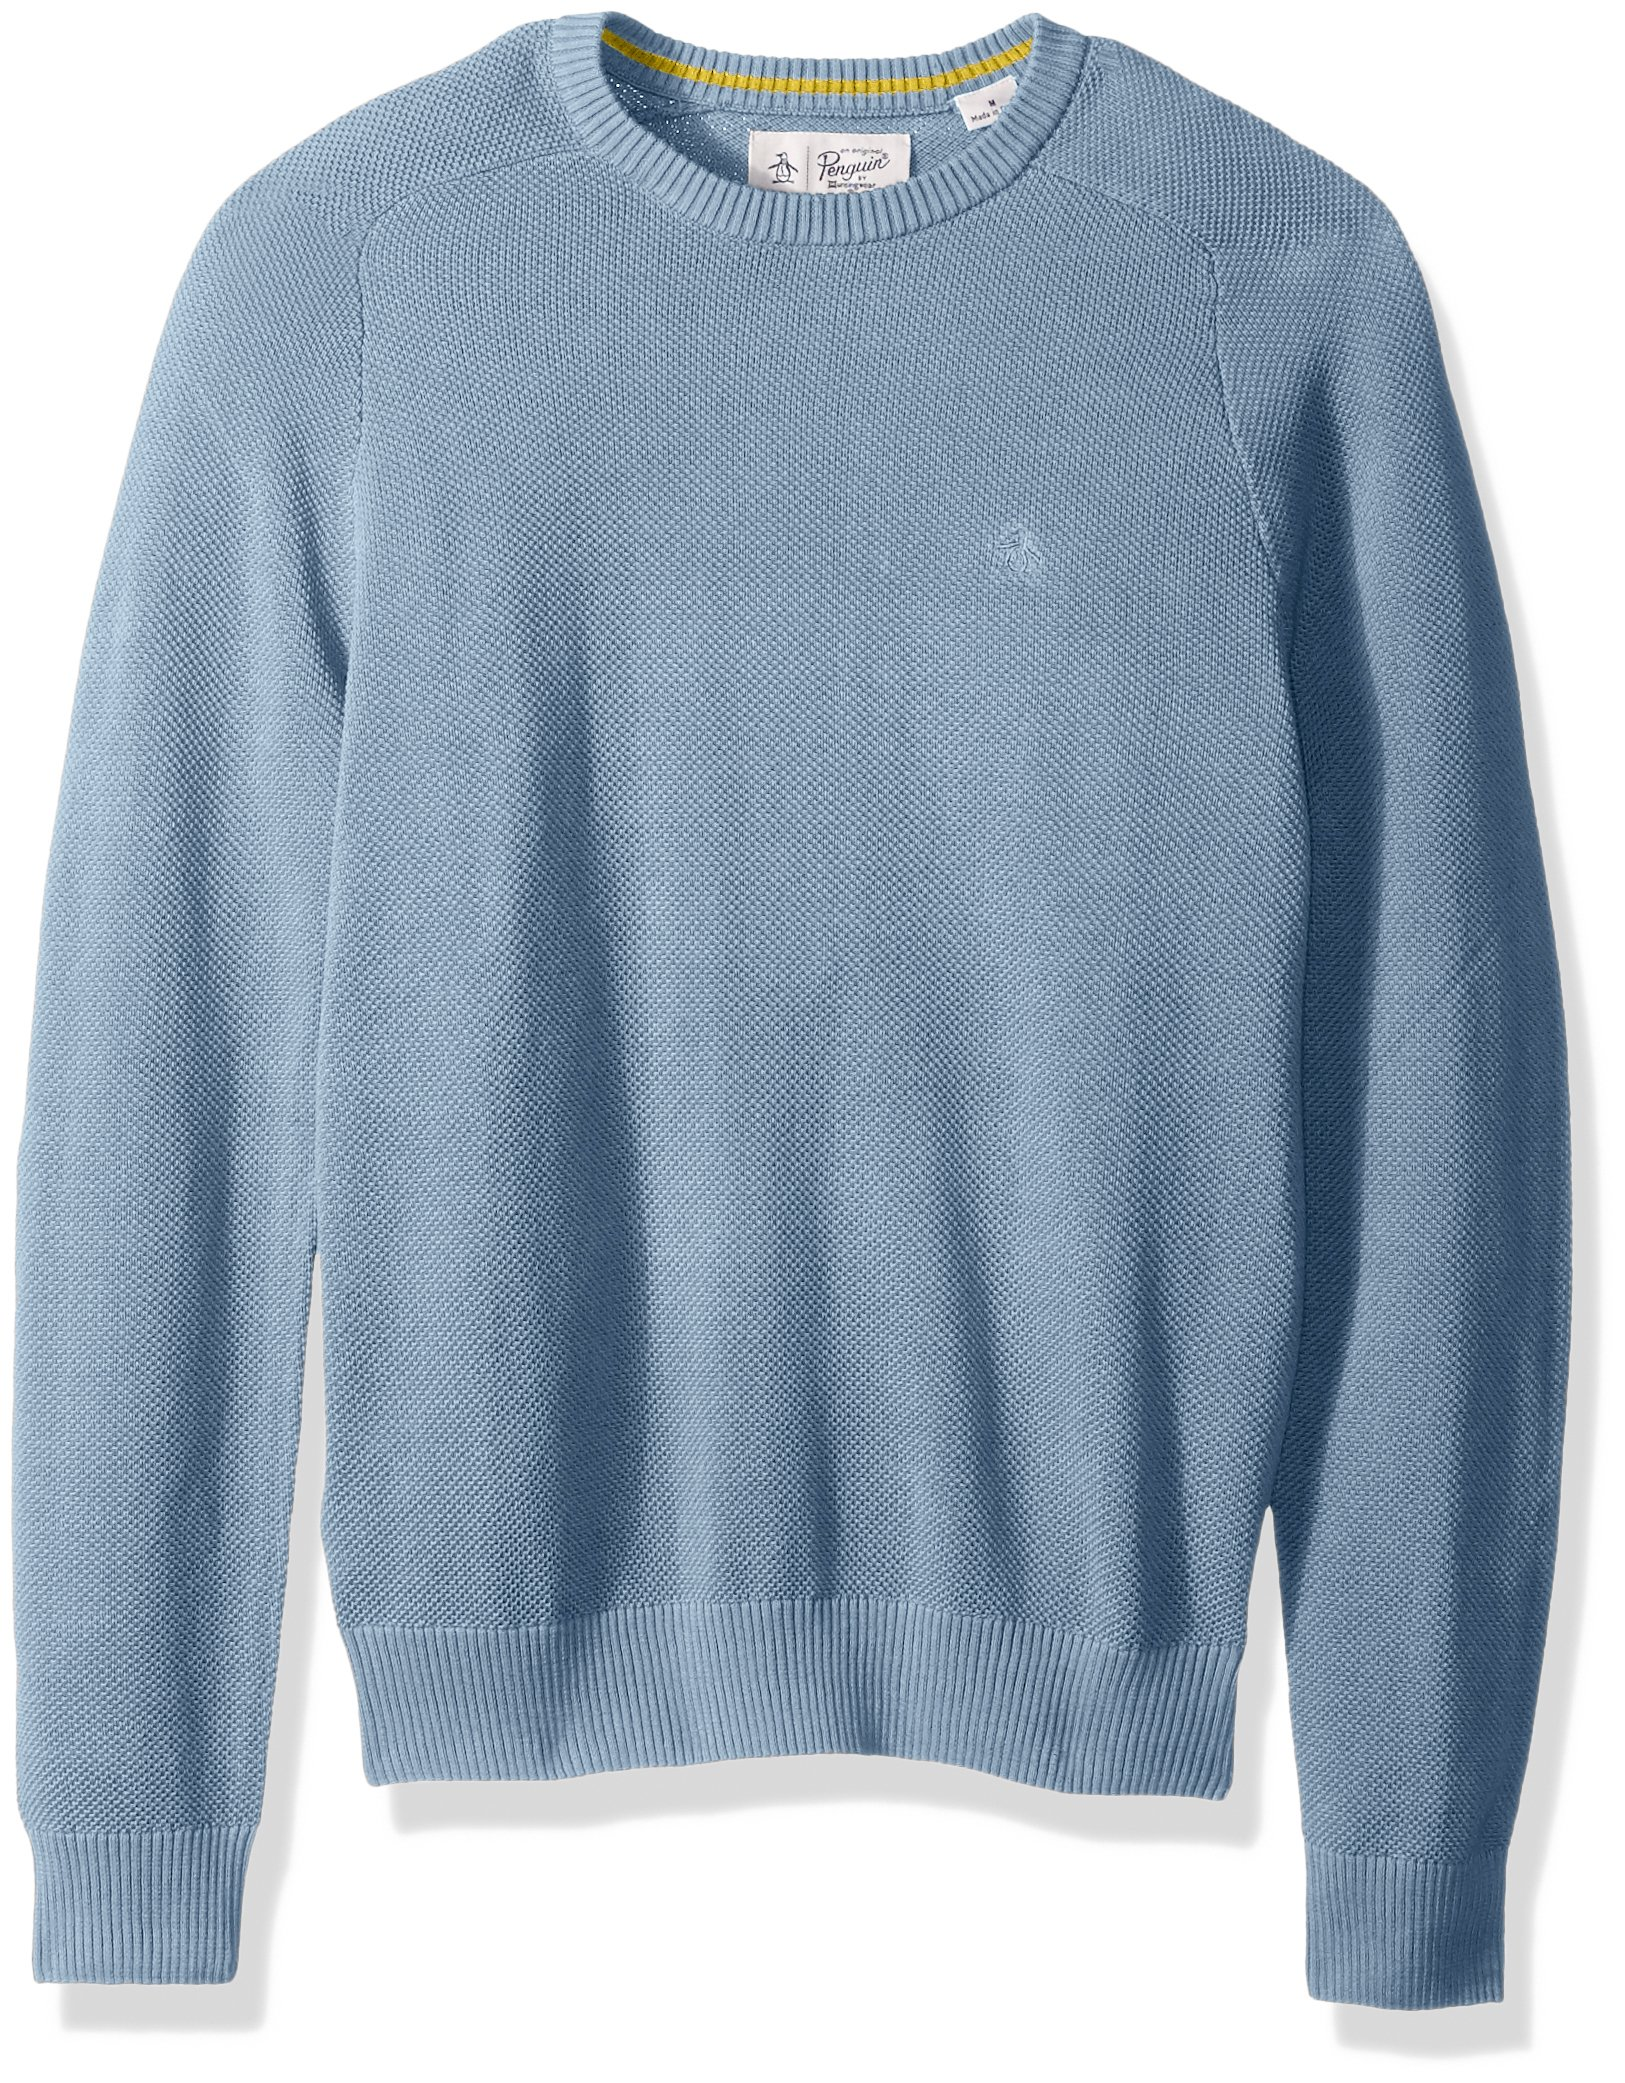 Original Penguin Men's Long Sleeve Honeycomb Pique Sweater, Faded Denim, Medium